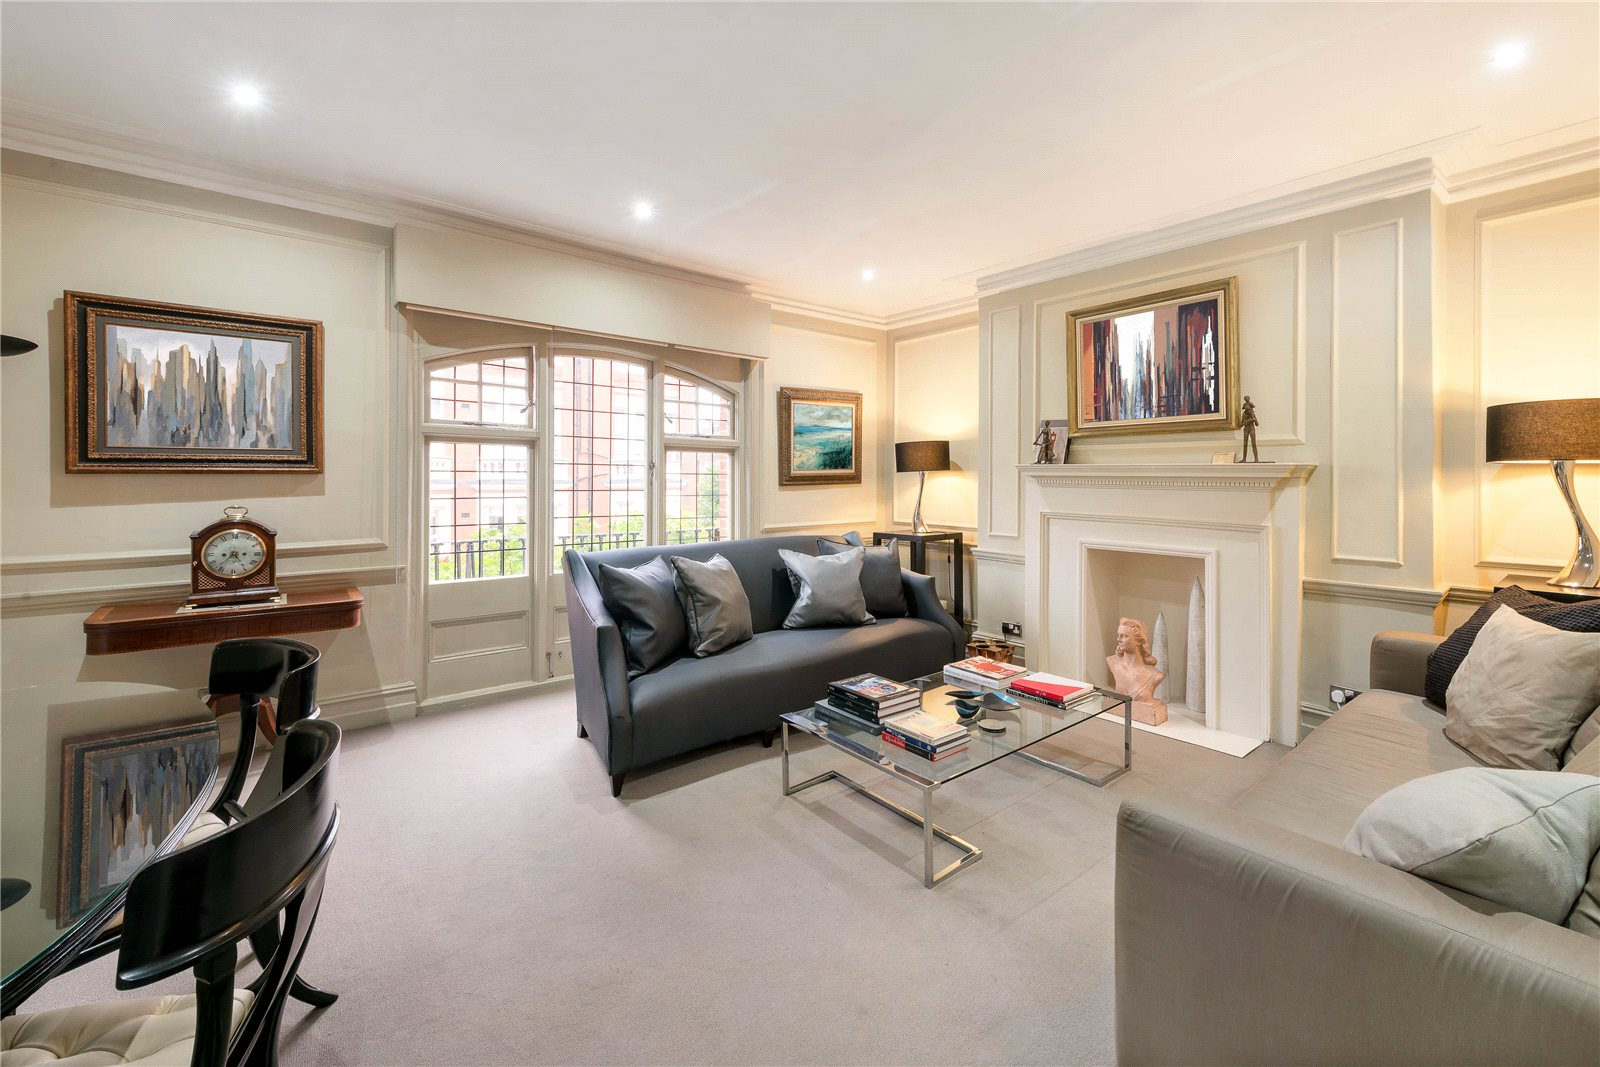 公寓 为 销售 在 Sloane Gate Mansions, D'Oyley Street, London, SW1X London, 英格兰